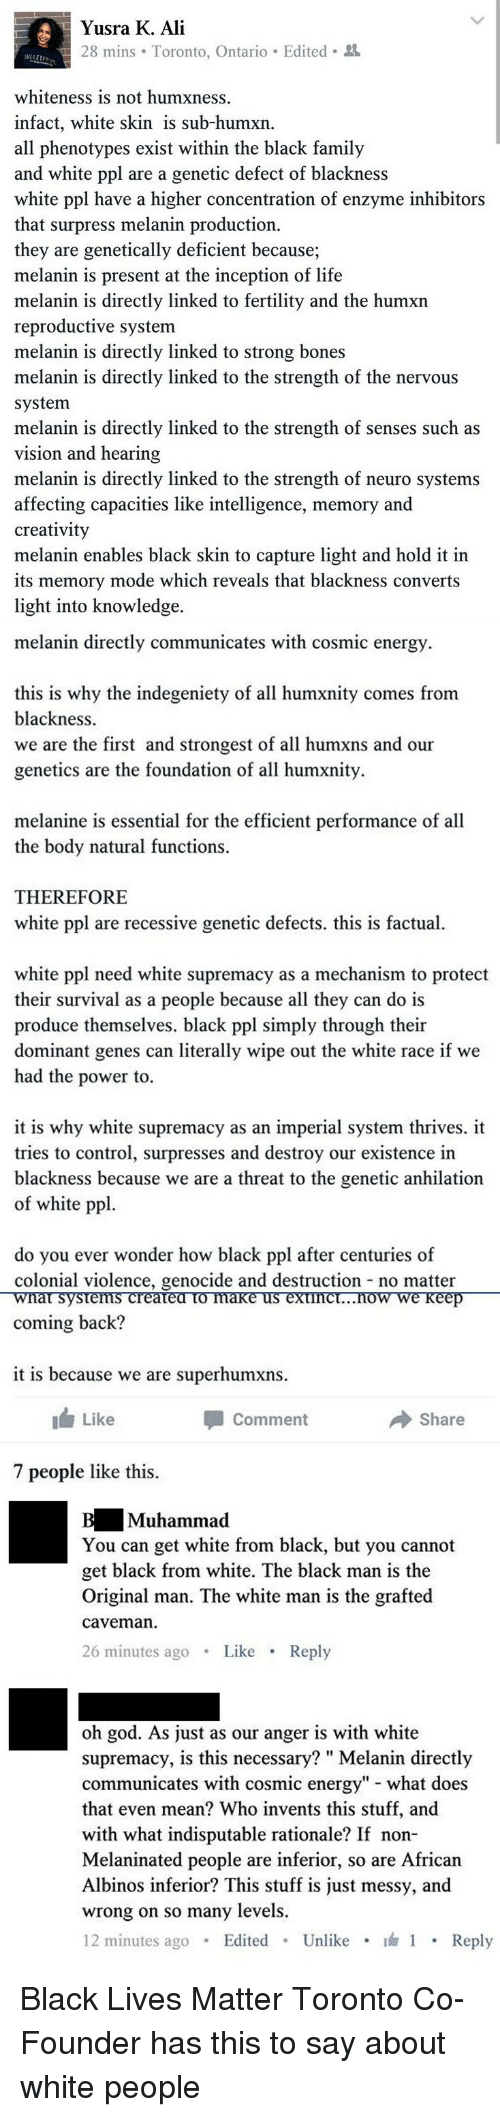 "Ali, Black Lives Matter, and Black Lives Matter: Yusra K. Ali  Edited  whiteness  is not humxness.  nfact, white skin  sub-humxn  all phenotypes exist within the black family  and white ppl are a genetic defect of blackness  white ppl have a higher concentration of enzyme inhibitors  that surpress melanin production.  they are genetically deficient because;  melanin is present at the inception of life  melanin is directly linked to fertility and the humxn  reproductive system  melanin is directly linked to strong bones  melanin is directly linked to the strength of the nervous  ystem.  melanin is directly  nked to the  rength of senses such as  vision and hearing  melanin is directly linked to the  rength of neuro systems  affecting capacities like intelligence, memory and  creativity  melanin enables black skin to capture light and hold it in  its memory mode which reveals that blackness converts  light into knowledge  melanin directly communicates with cosmic energy  s is why the indegeniety of all humxnity comes from  blackness  we are the first and strongest of all humxns and our  genetics are the foundation of all humxnity  melanine is essential for the efficient performance of all  the body natural functions  THEREFORE  white ppl are recessive genetic defects. this is factua  white ppl need white supremacy as a mechanism to protect  their survival as a people because all they can do is  produce themselves. black ppl simply through their  dominant genes can  erally wipe out the white race  We  had the power to  it is why white supremacy as an imperial system thrives  it  to control, surpresses and destroy our existence in  blackness because we are a threat to the genetic anhilation  of white pp  do you ever wonder how black ppl after centuries of  colonial violence, genocide and destruction no matter  coming back?  it is because we are superhumxns  Like  Share  commen  7 people like this  uhammad  You can get white from black, but you cannot  get black from white. The black man is the  Original man. The white man is the grafted  Caveman  26  Lik  Reply  as our anger is with white  oh god. As ju  supremacy, is this necessary  Melanin directly  communicates with cosmic energy"" what does  hat even mean? Who invents this stuff, and  with what indisputable rationale? If non-  Melaninated people are inferior, so are African  Albinos inferior? This stu  messy, and  S ju  wrong on so many levels.  Edited  Unlike  Reply Black Lives Matter Toronto Co-Founder has this to say about white people"